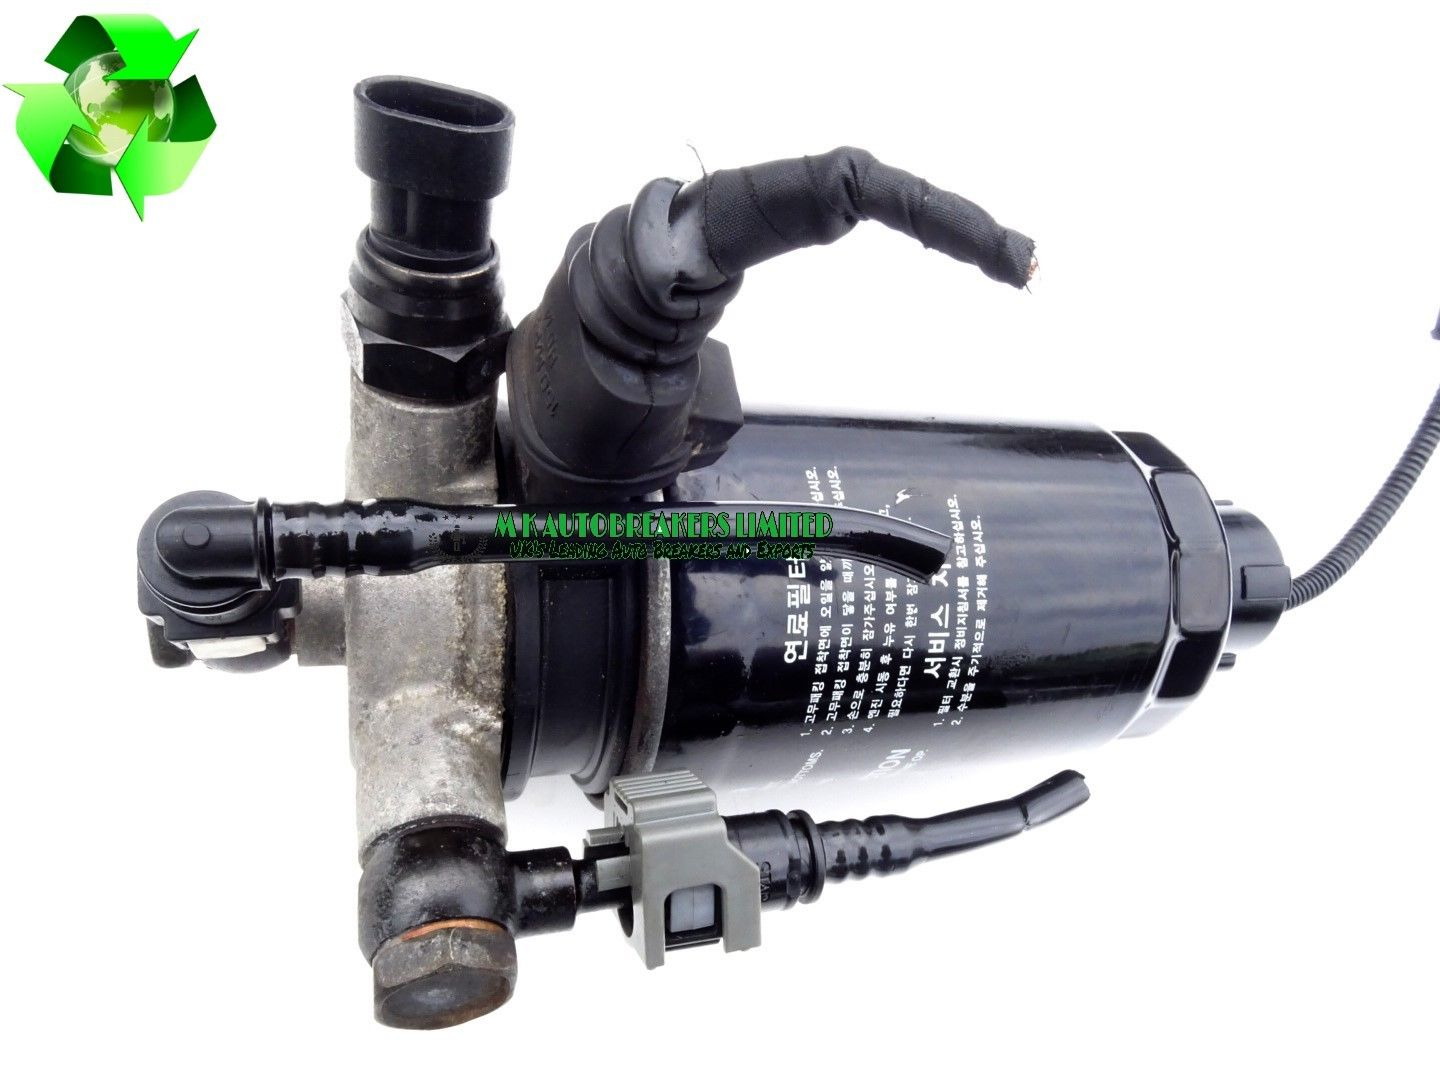 hyundai santa fe fuel filter    hyundai       santa       fe    model from 2006 2012 diesel    fuel       filter        hyundai       santa       fe    model from 2006 2012 diesel    fuel       filter